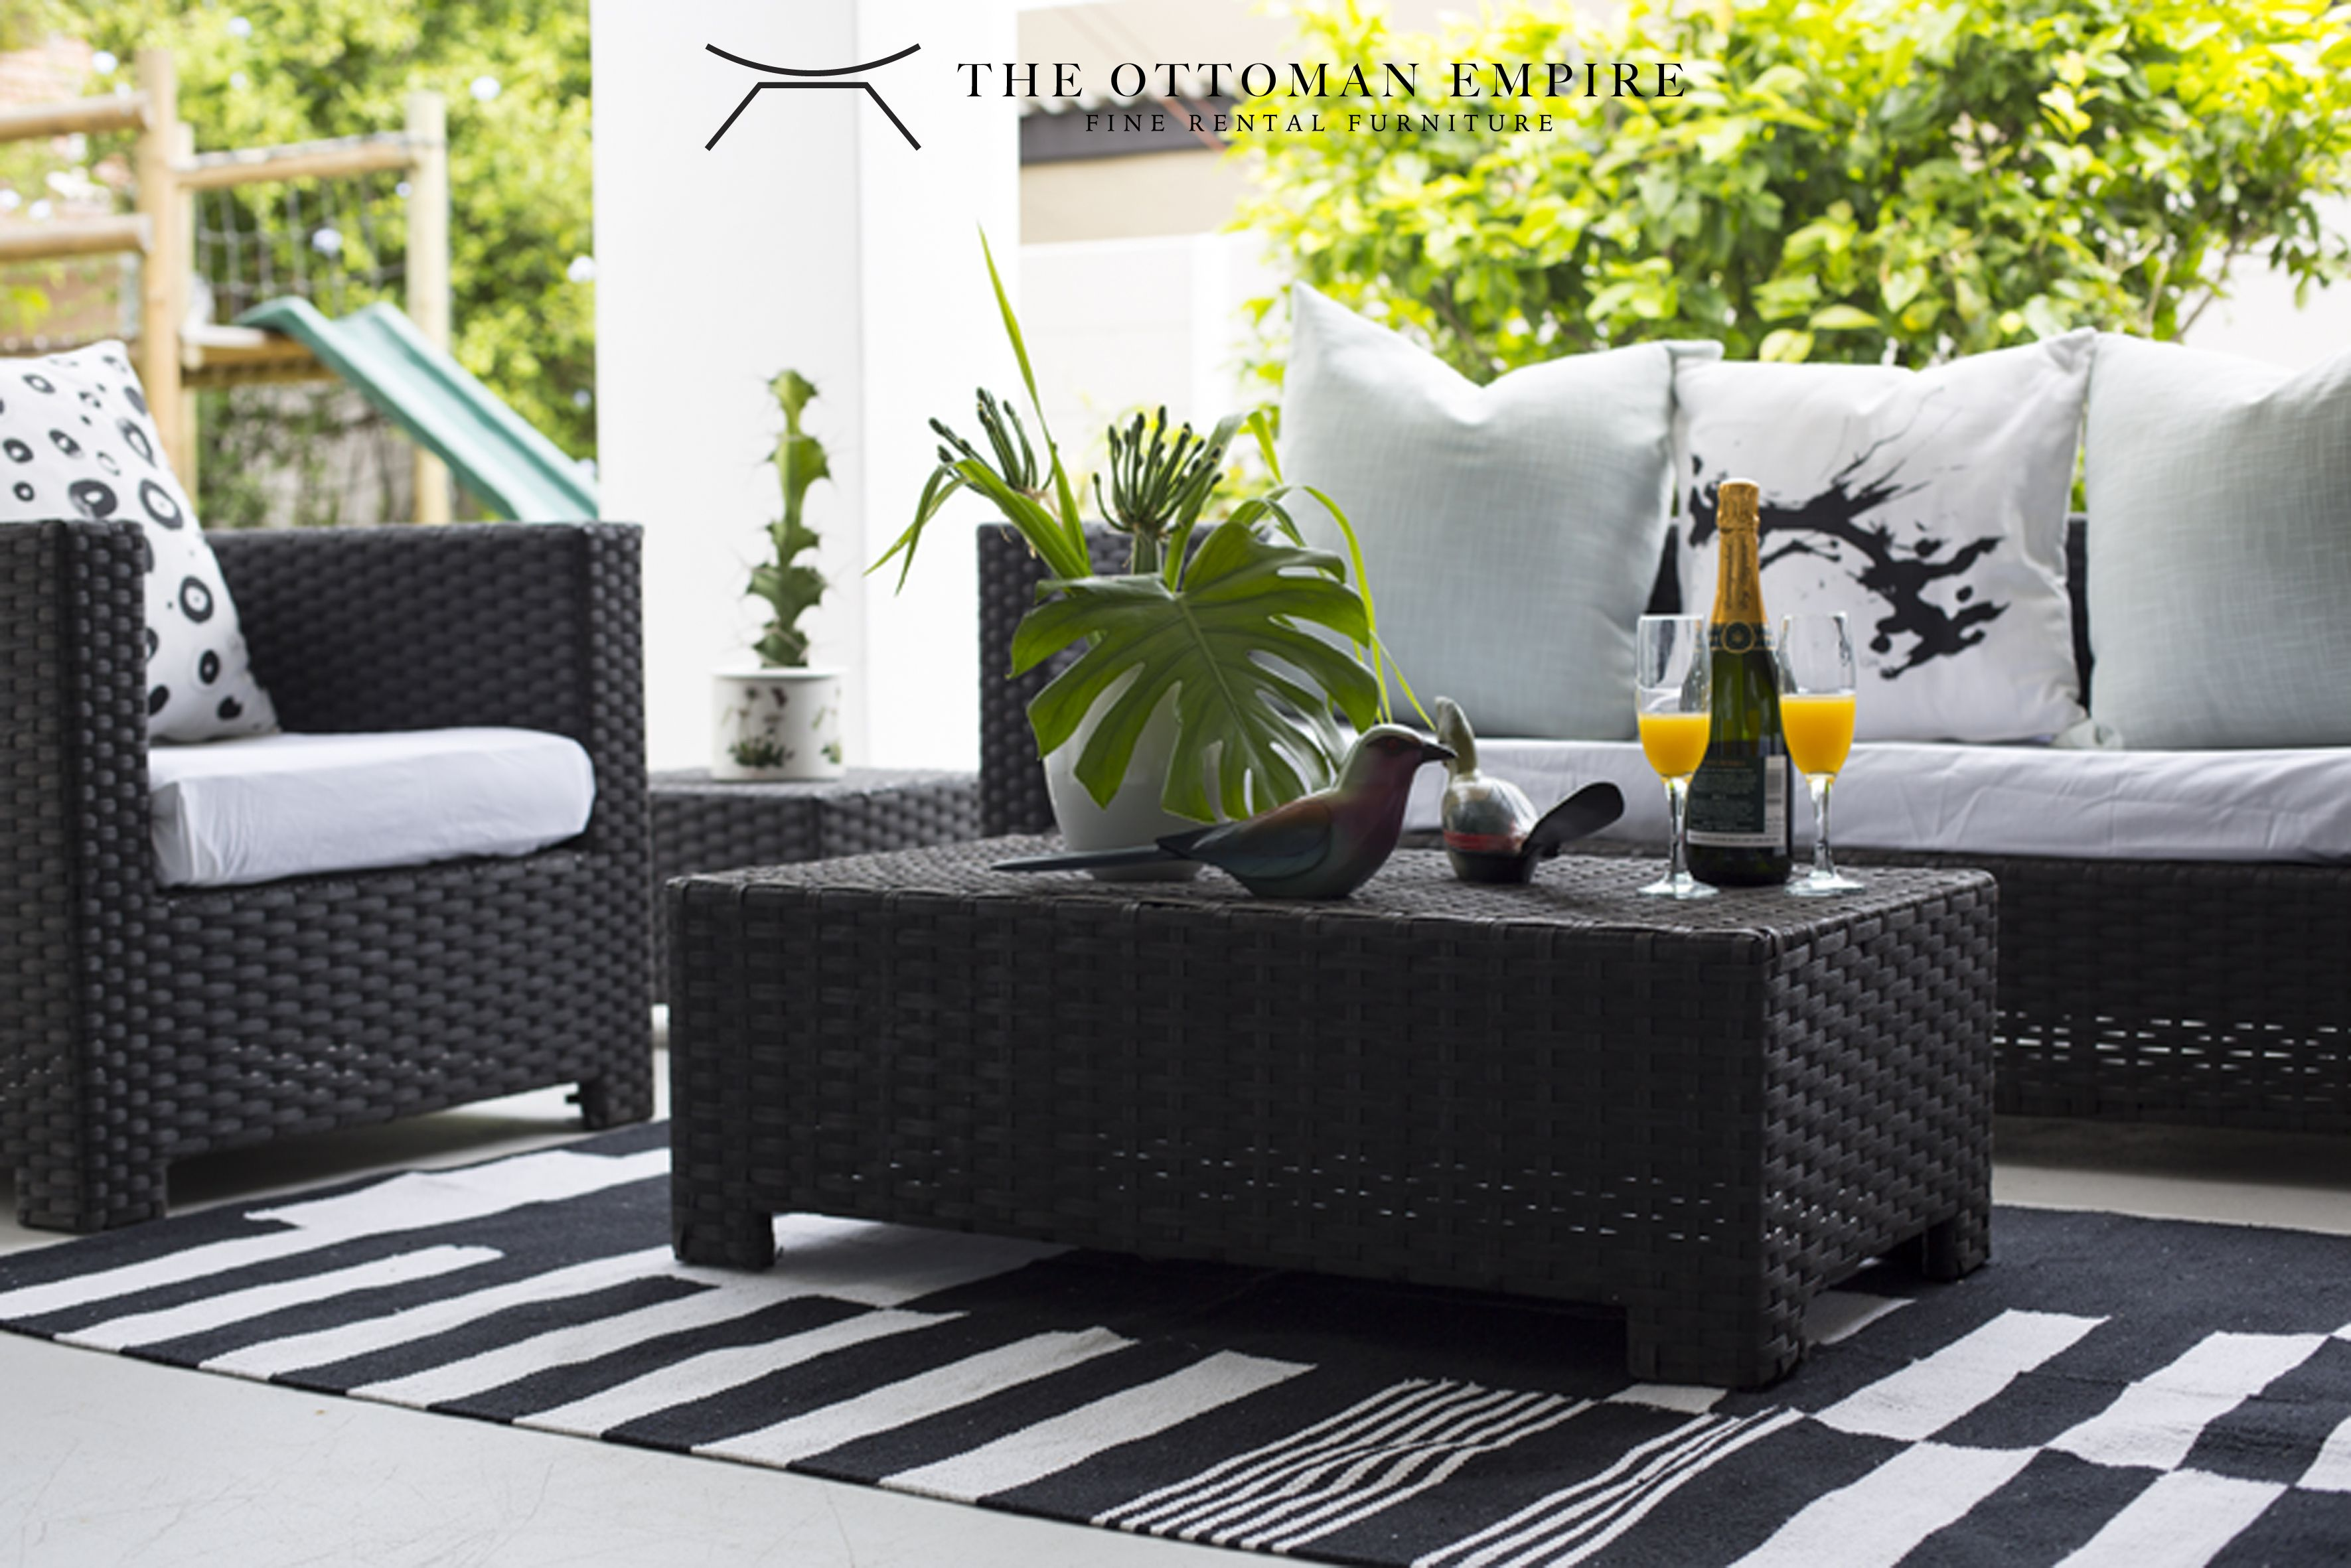 Bali outdoor furniture | Styled Shoot October | Pinterest